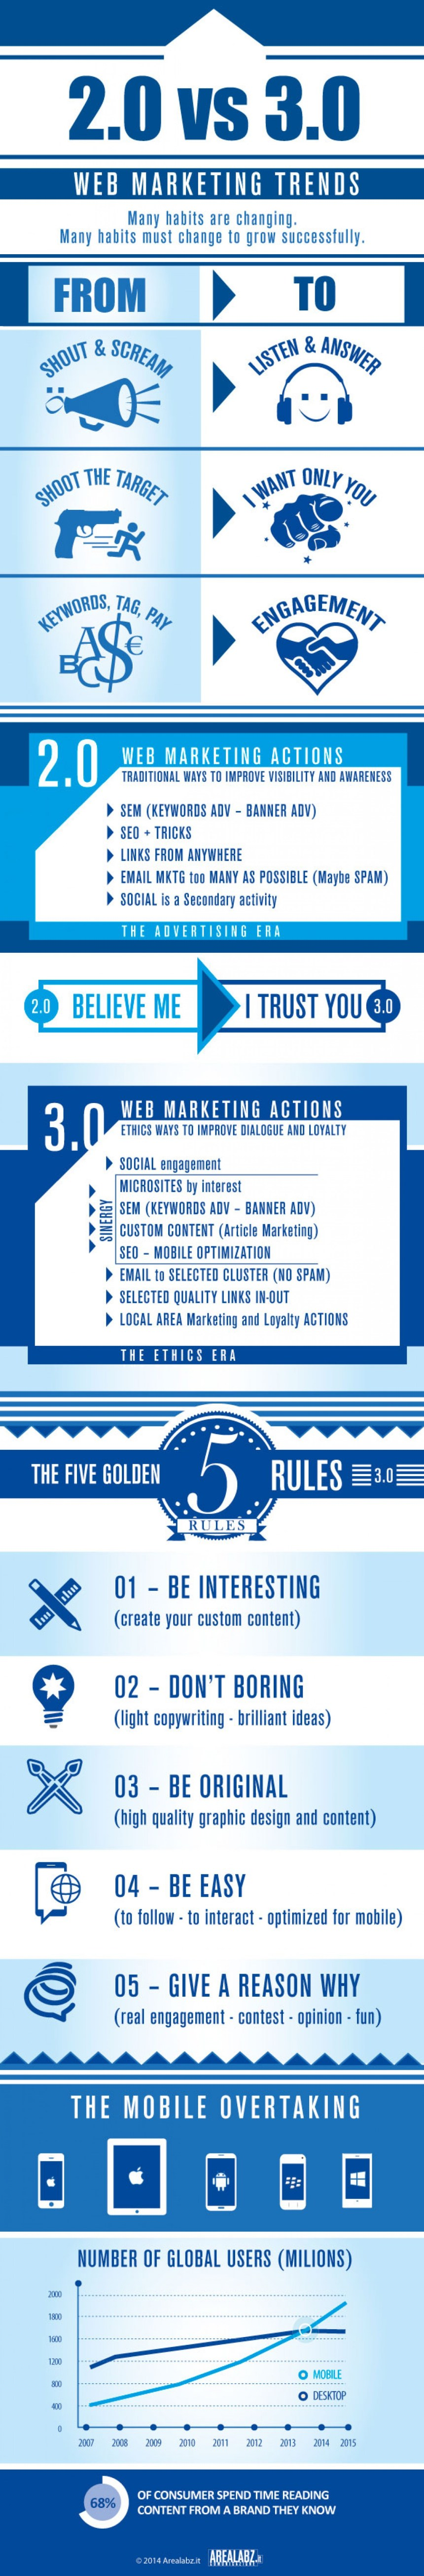 Tendencias en Web Marketing: 2.0 vs 3.0